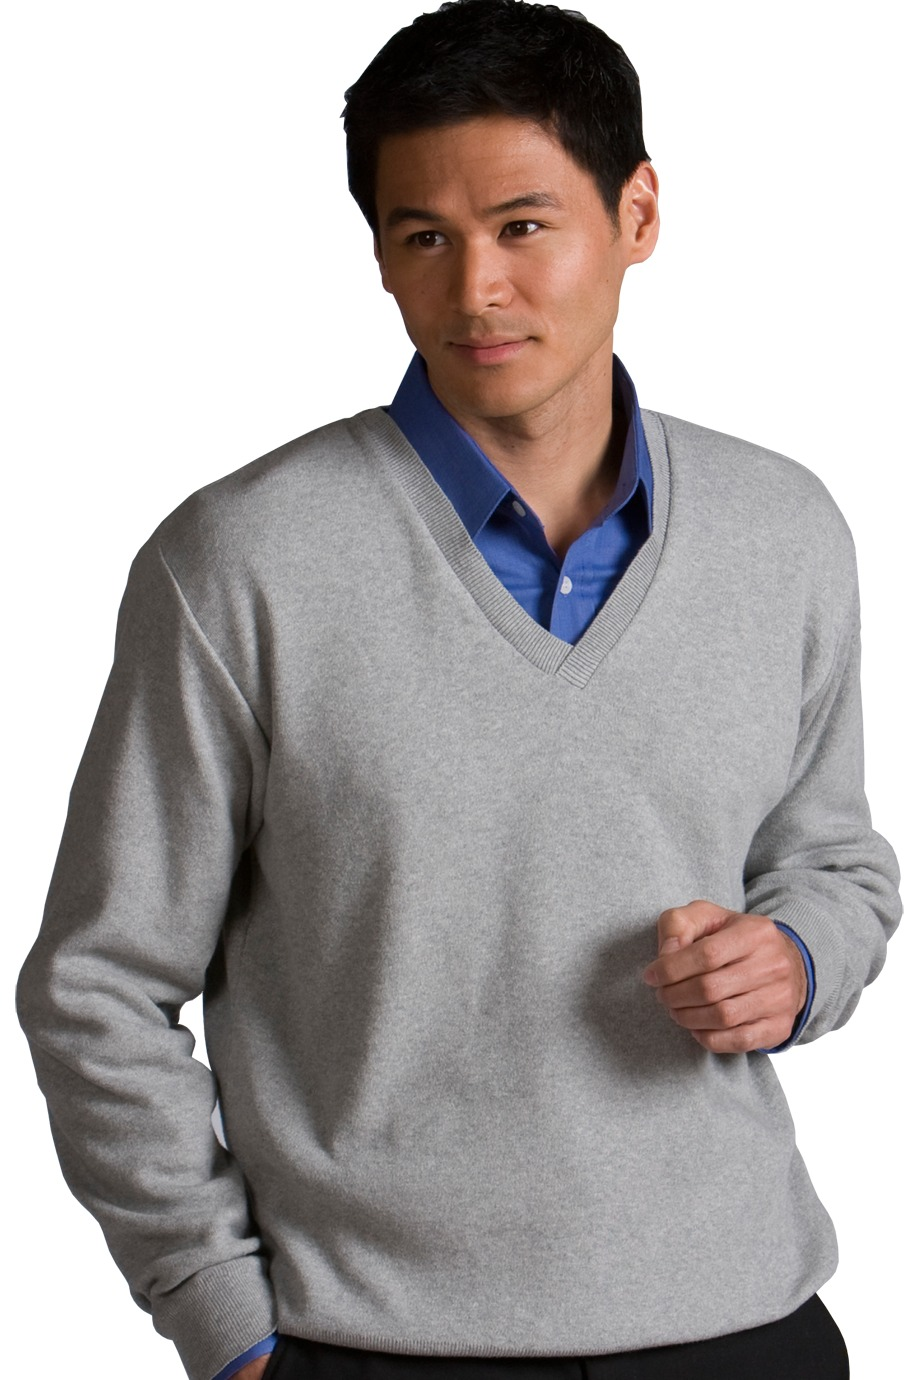 MLE700 - Mens Cotton Cashmere V-Neck Sweater